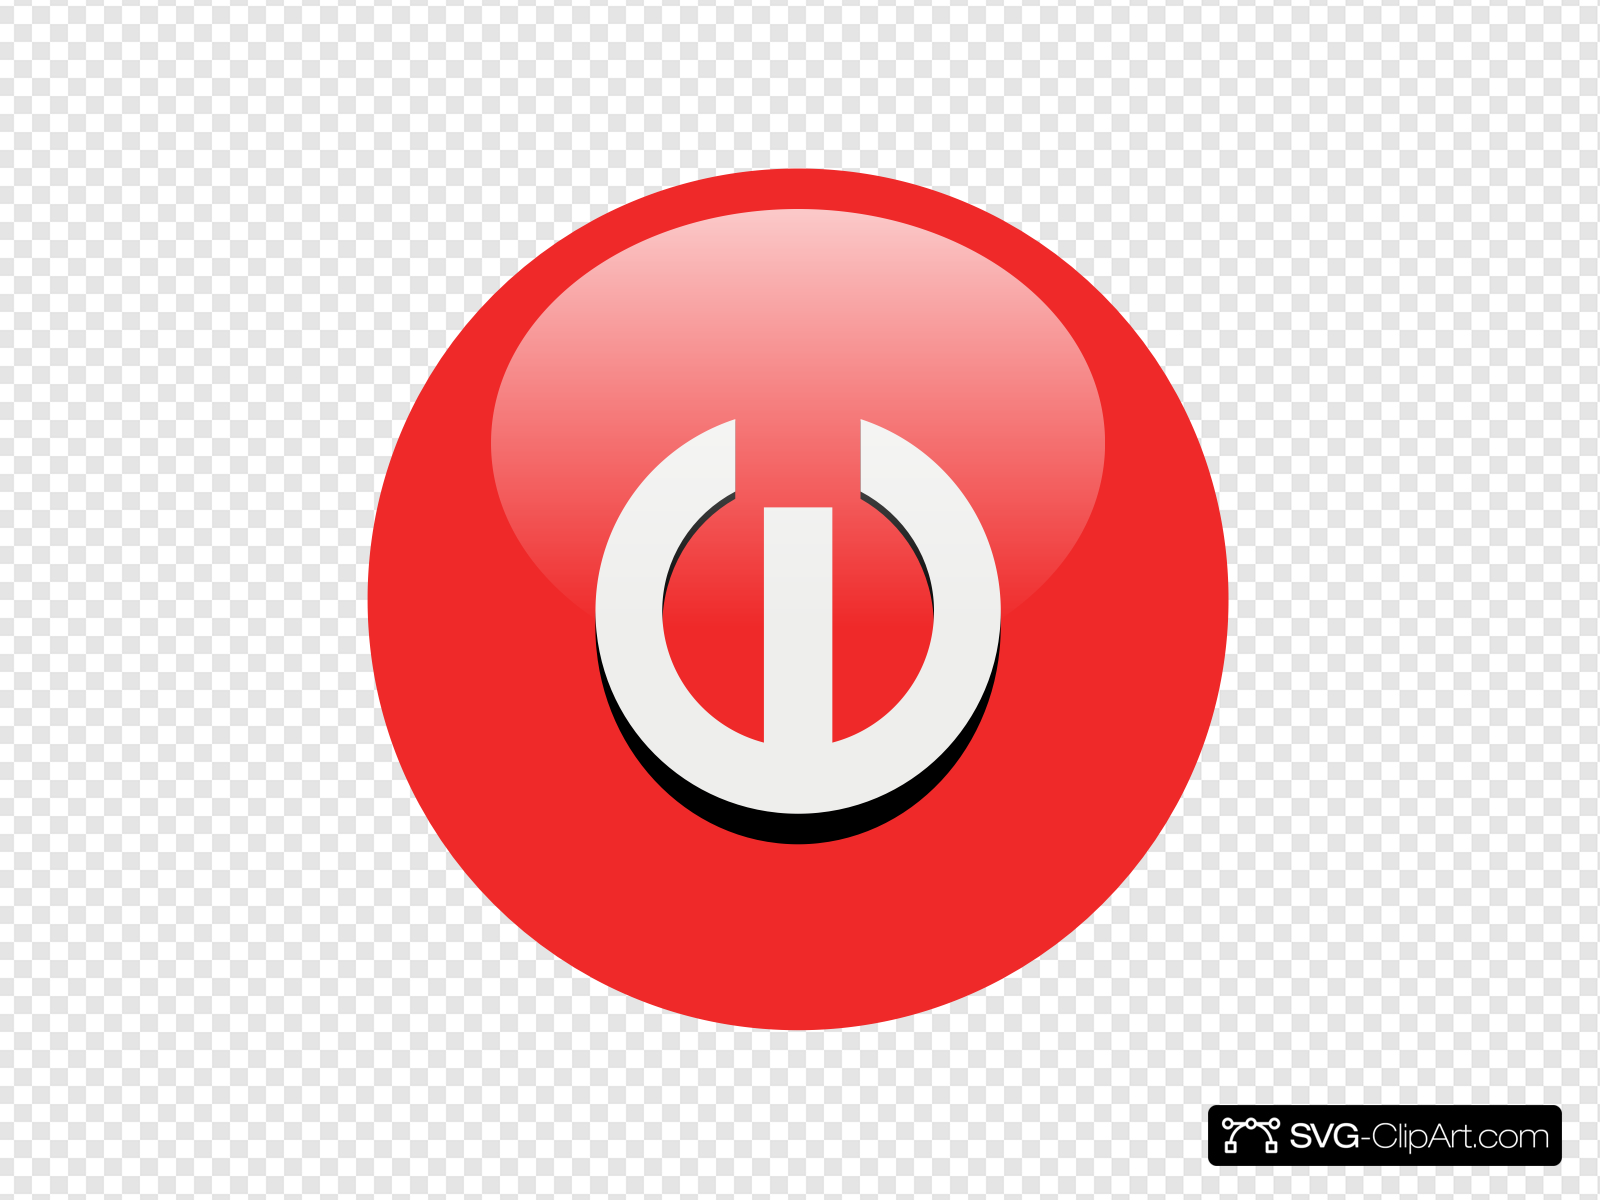 Red W 2 Clip art, Icon and SVG.